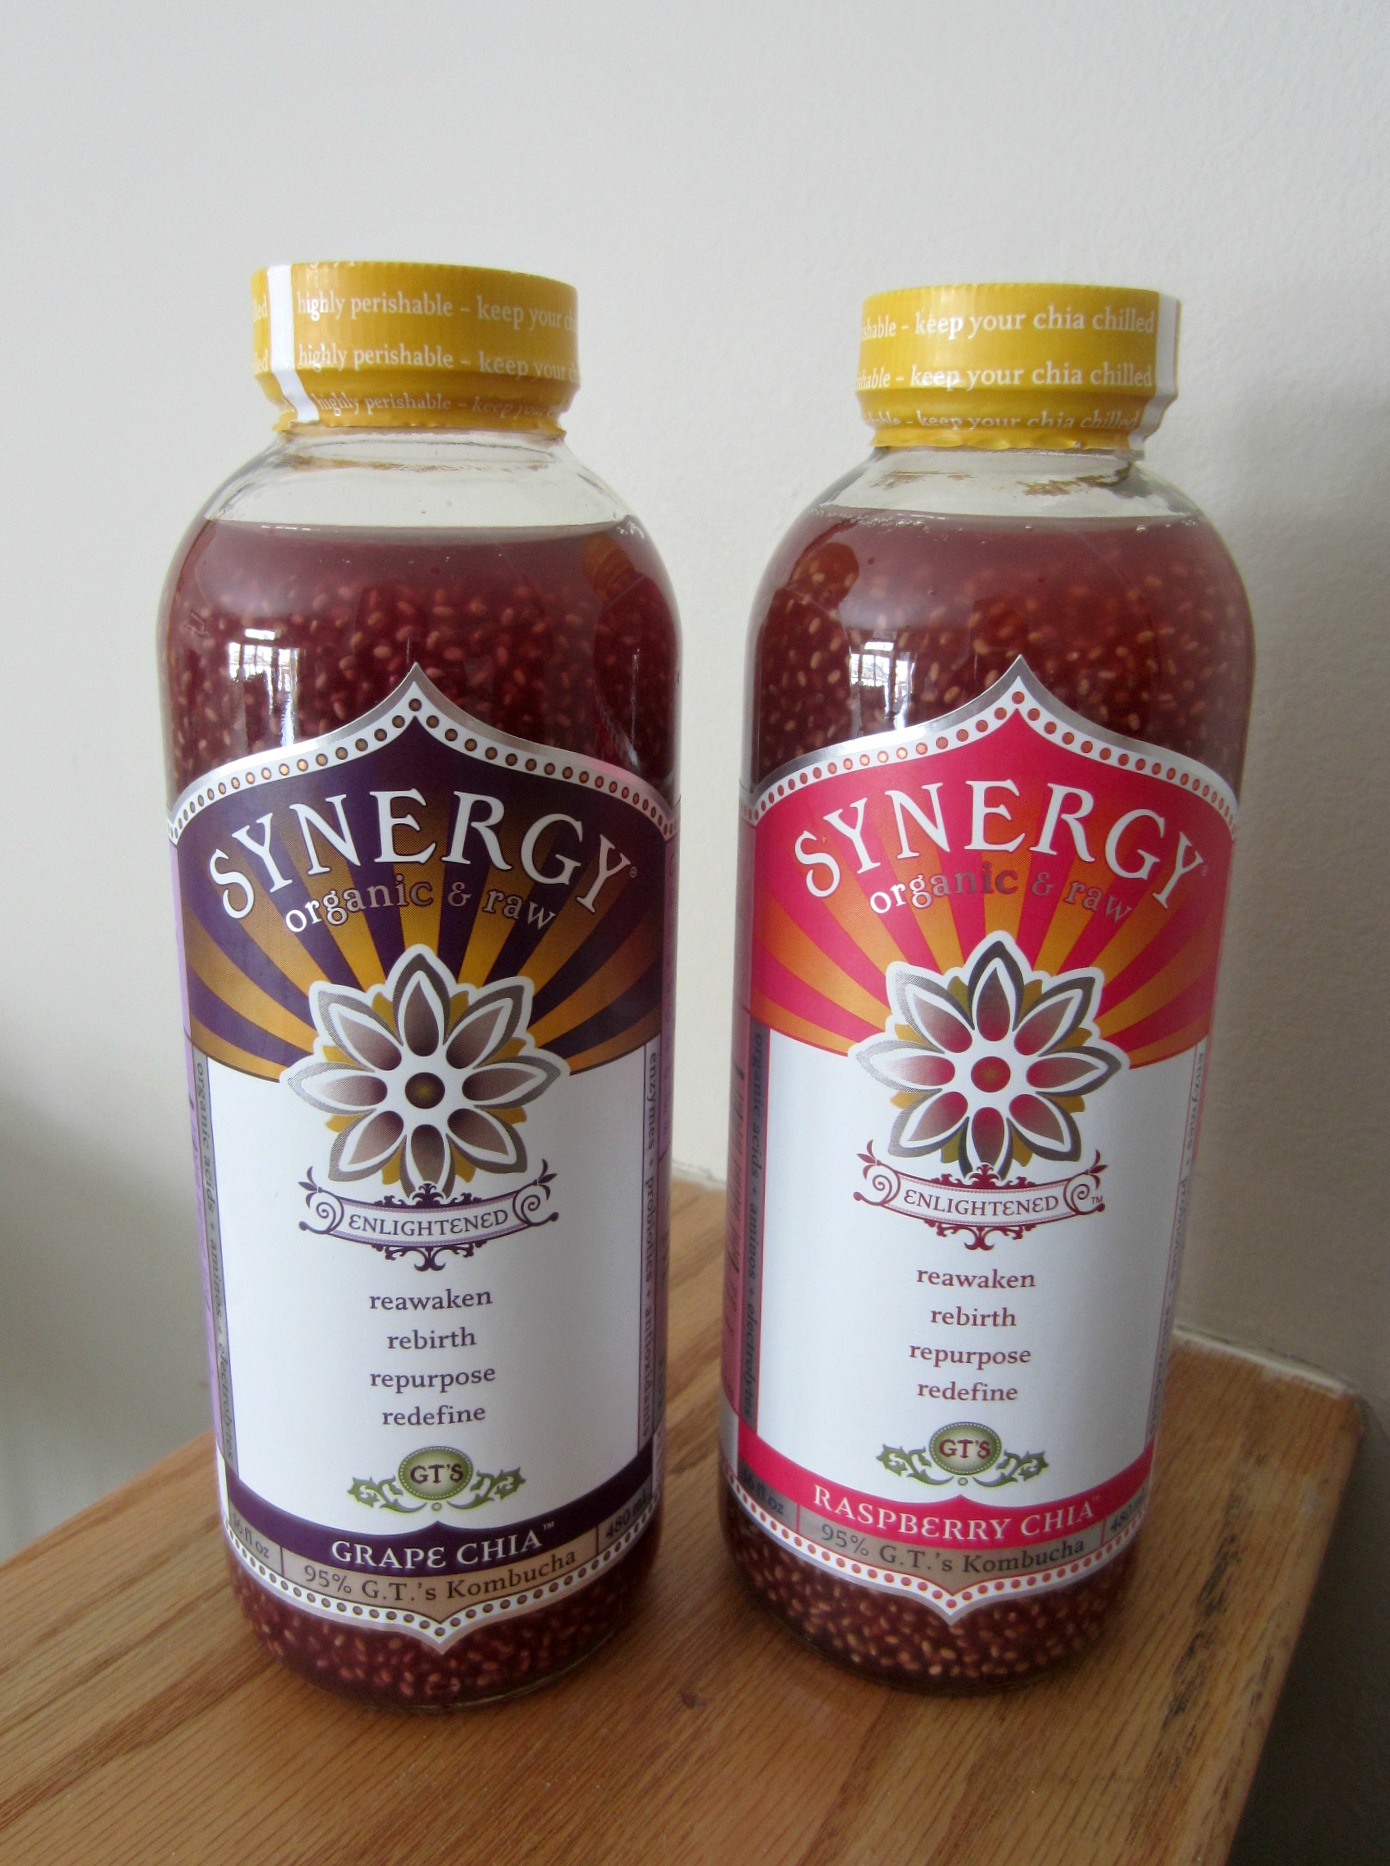 Synergy enlightened chia kombucha